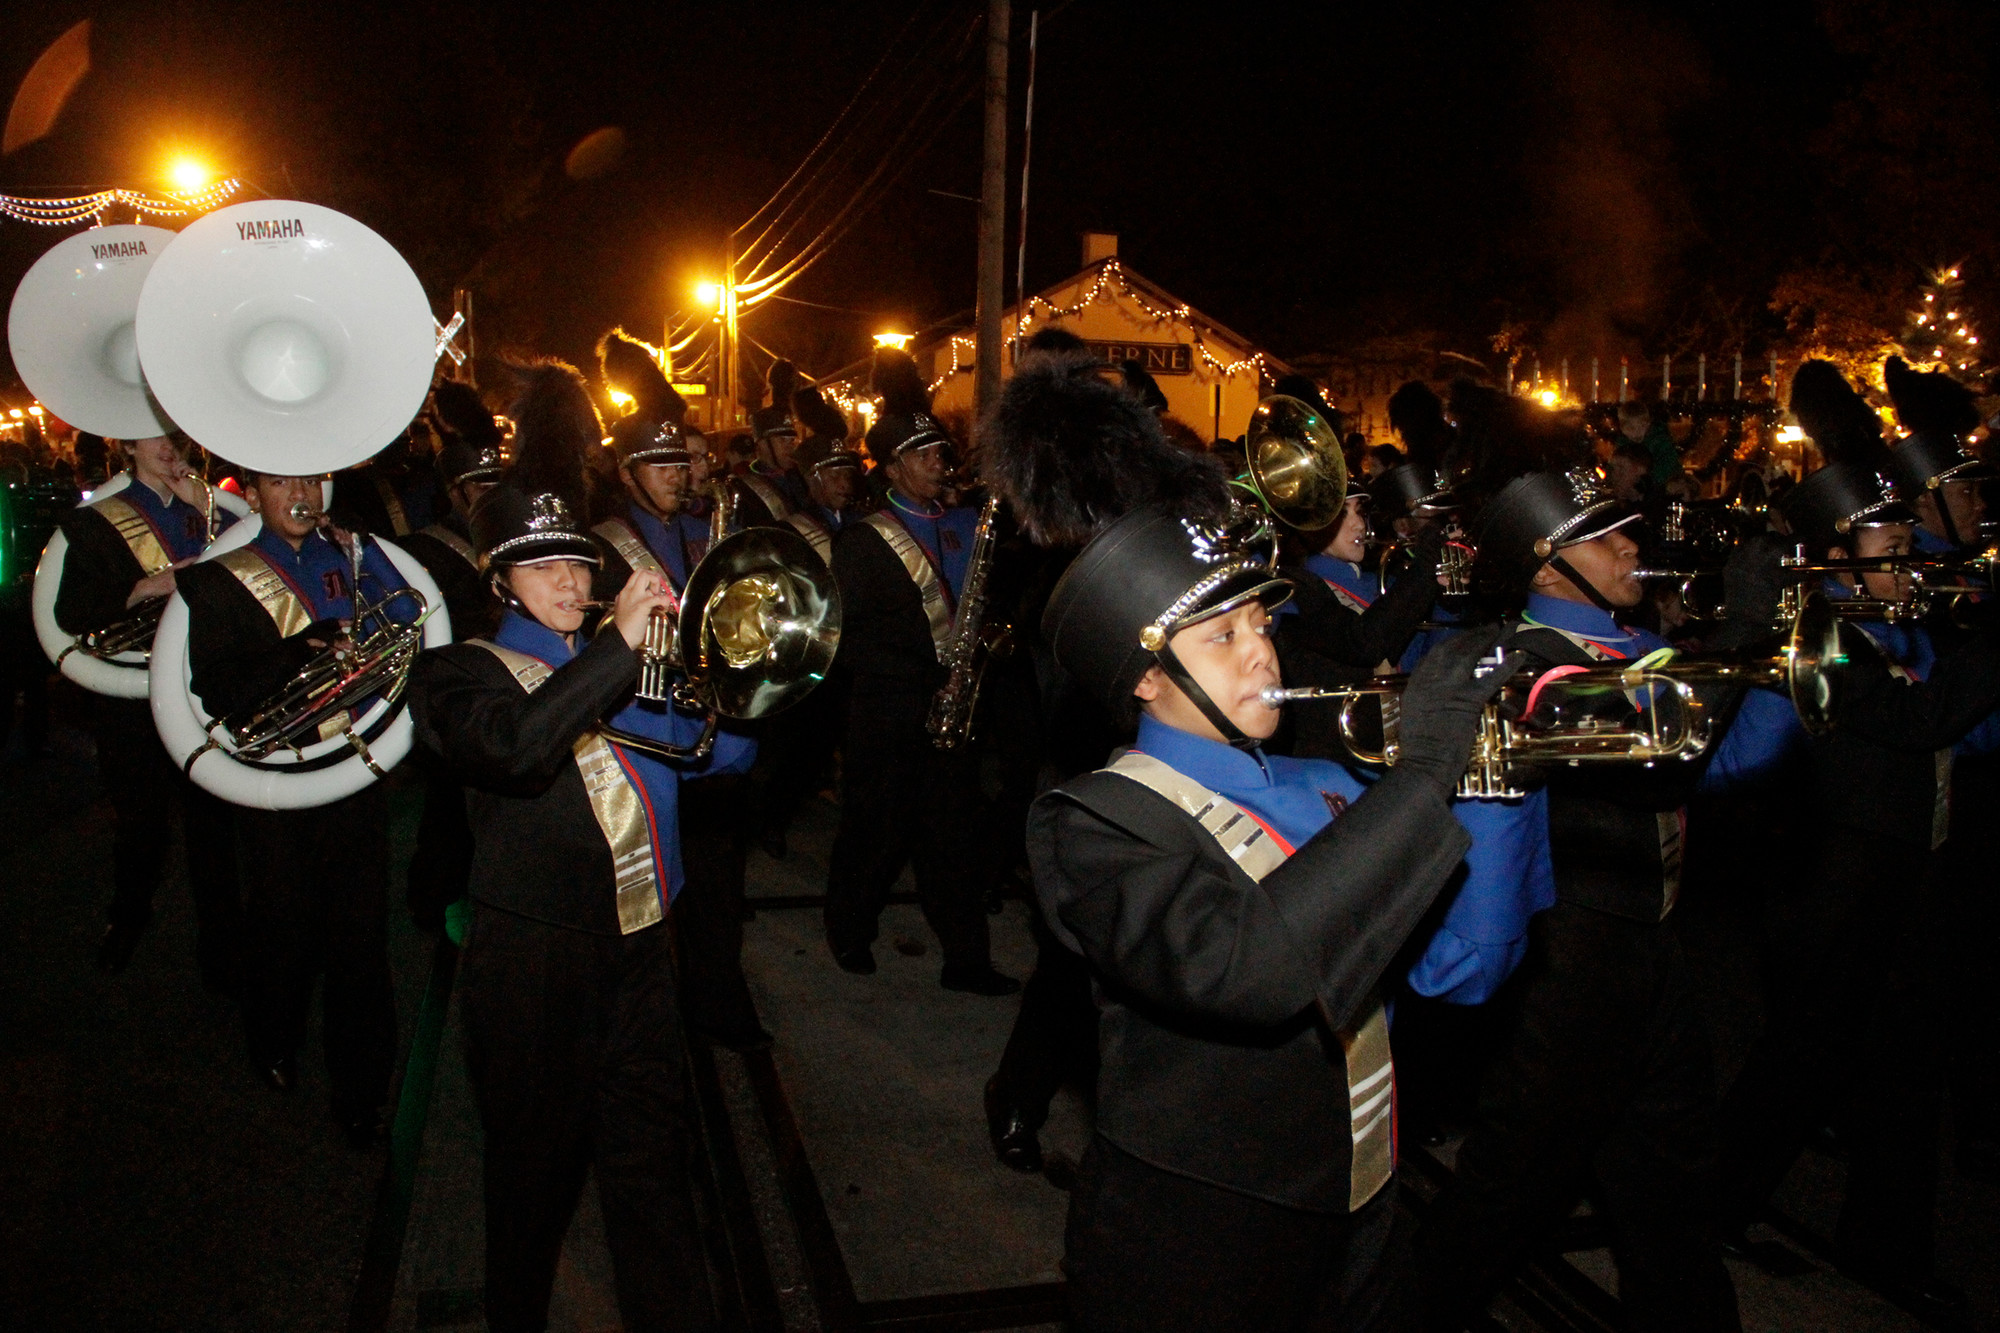 Malverne HS Marching Band performed during the Elf Parade.